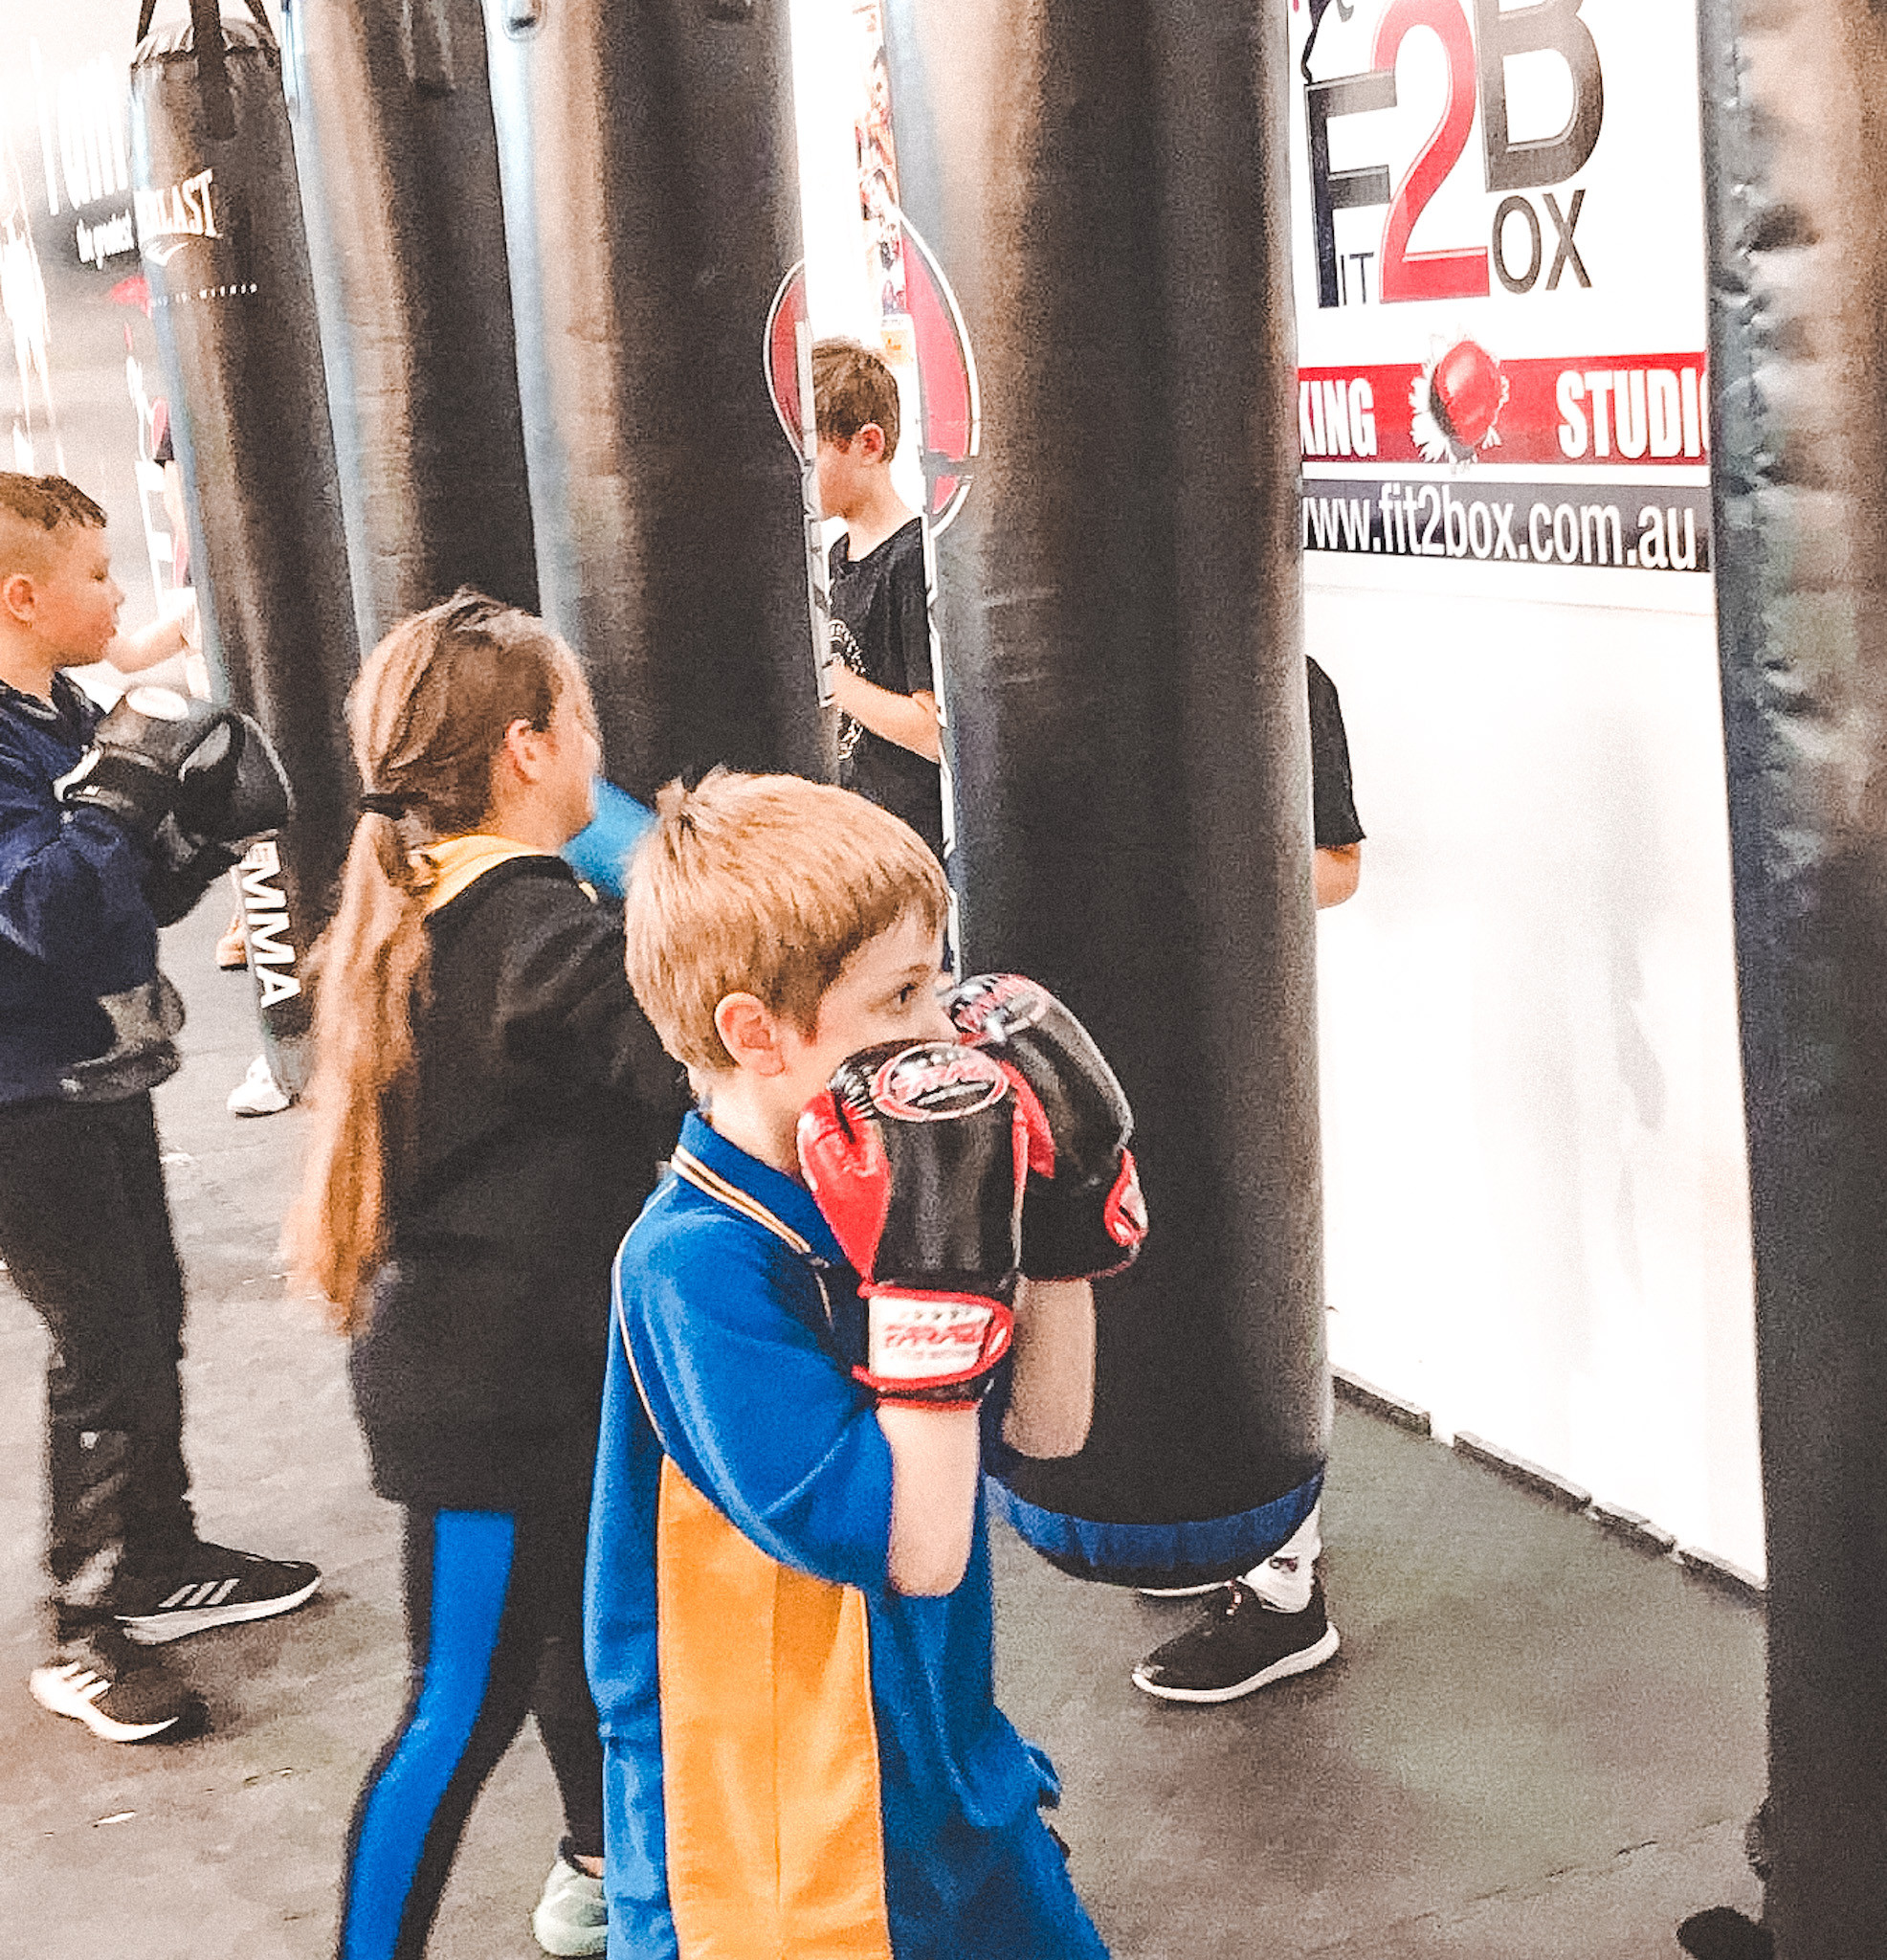 Tuesday - Kids Boxing Term 2